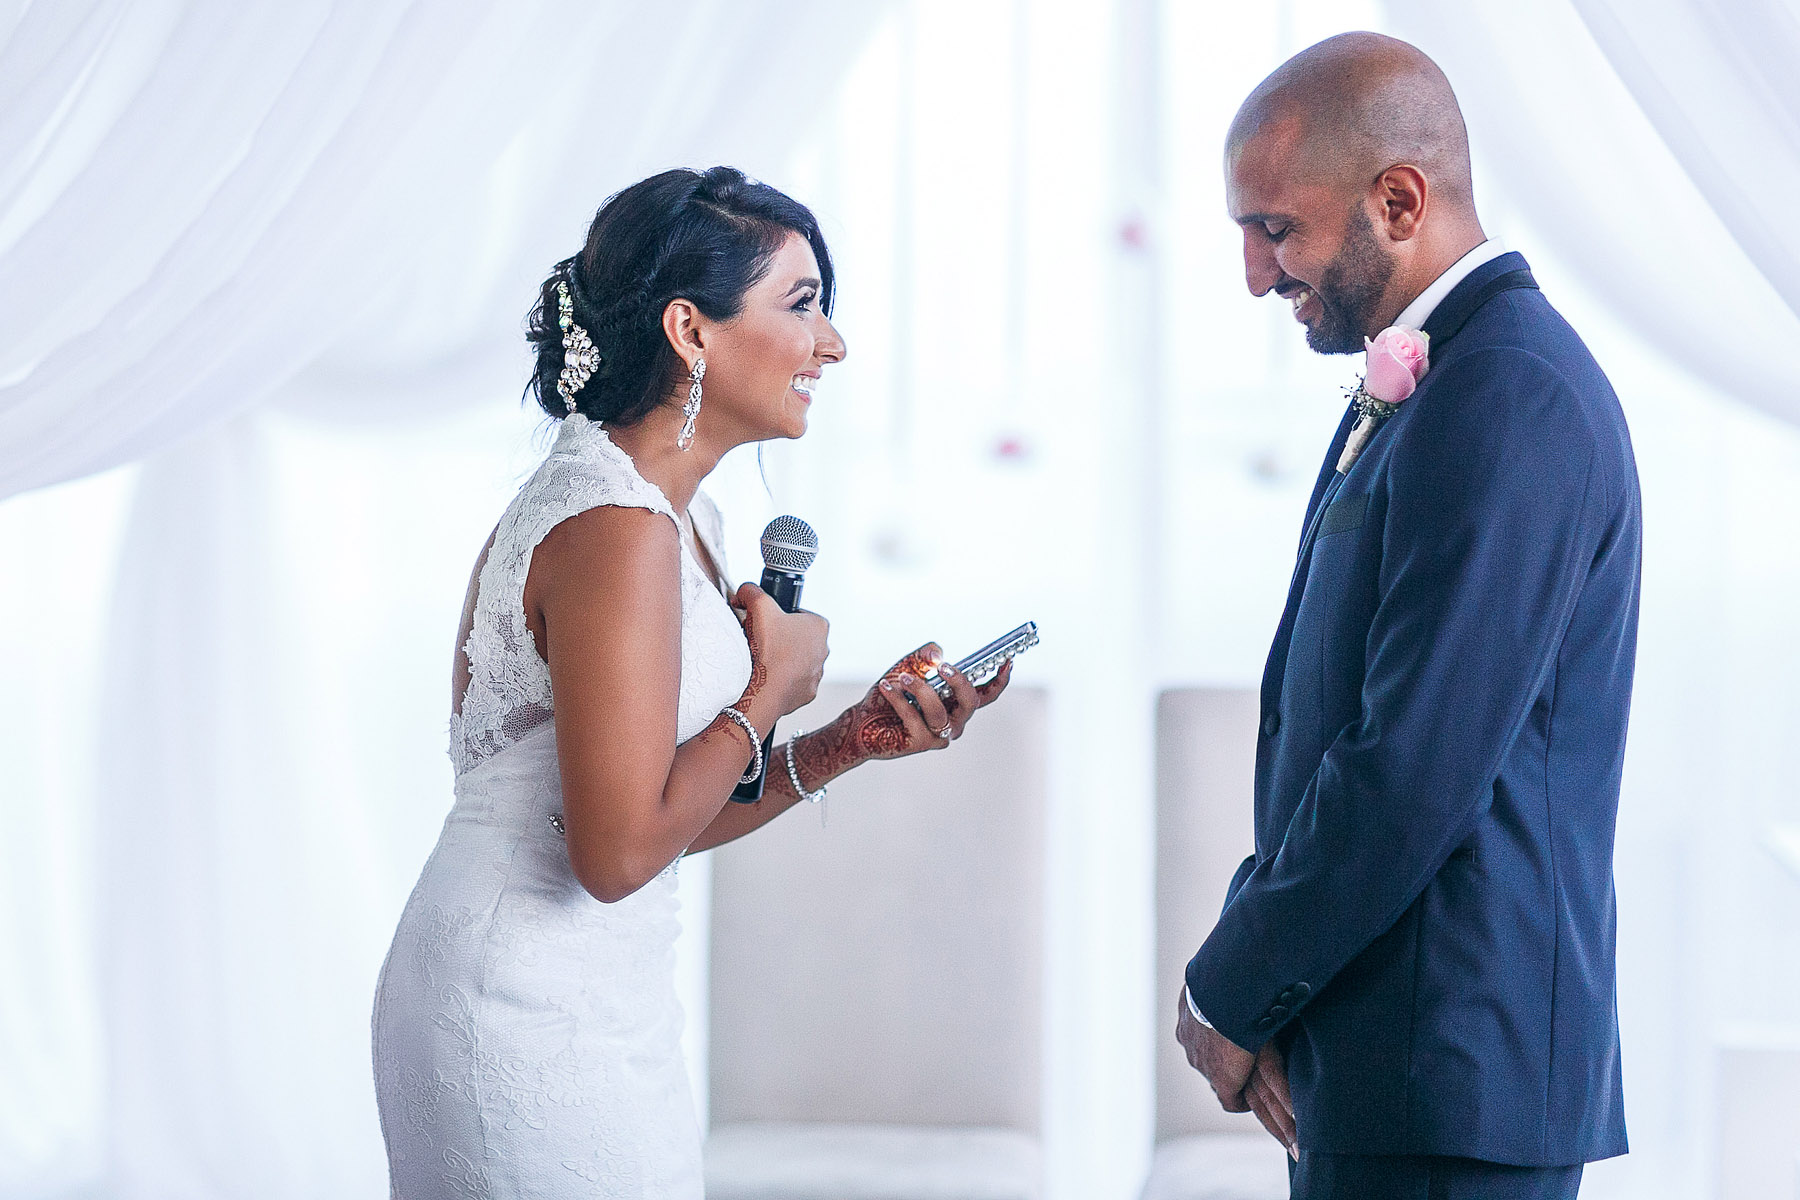 bride-and-groom-making-speeches-by-rahul-khona